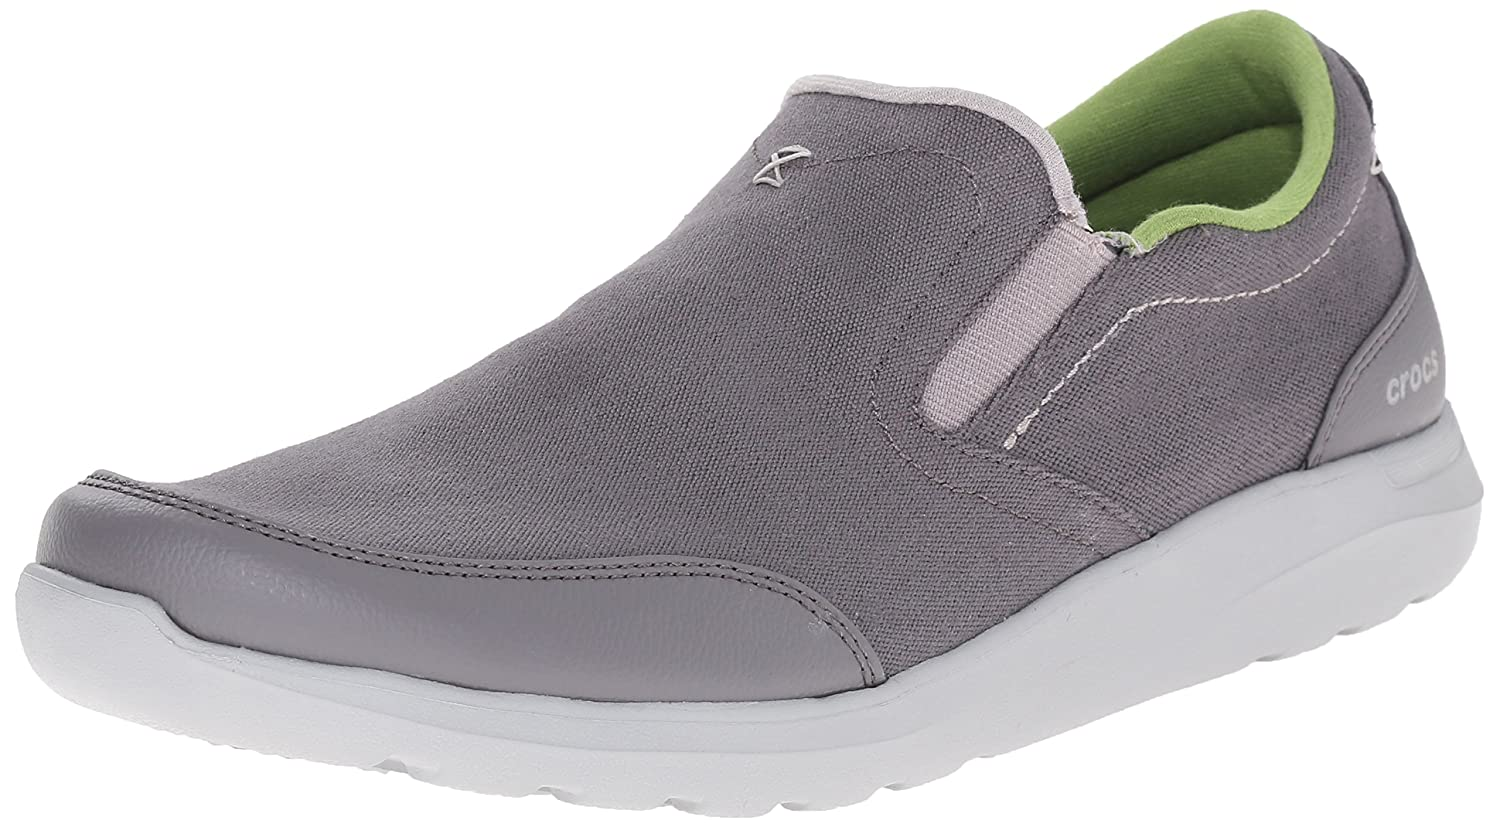 Crocs Men's Kinsale Slip-on Loafer Crocs Kinsale Slip-on